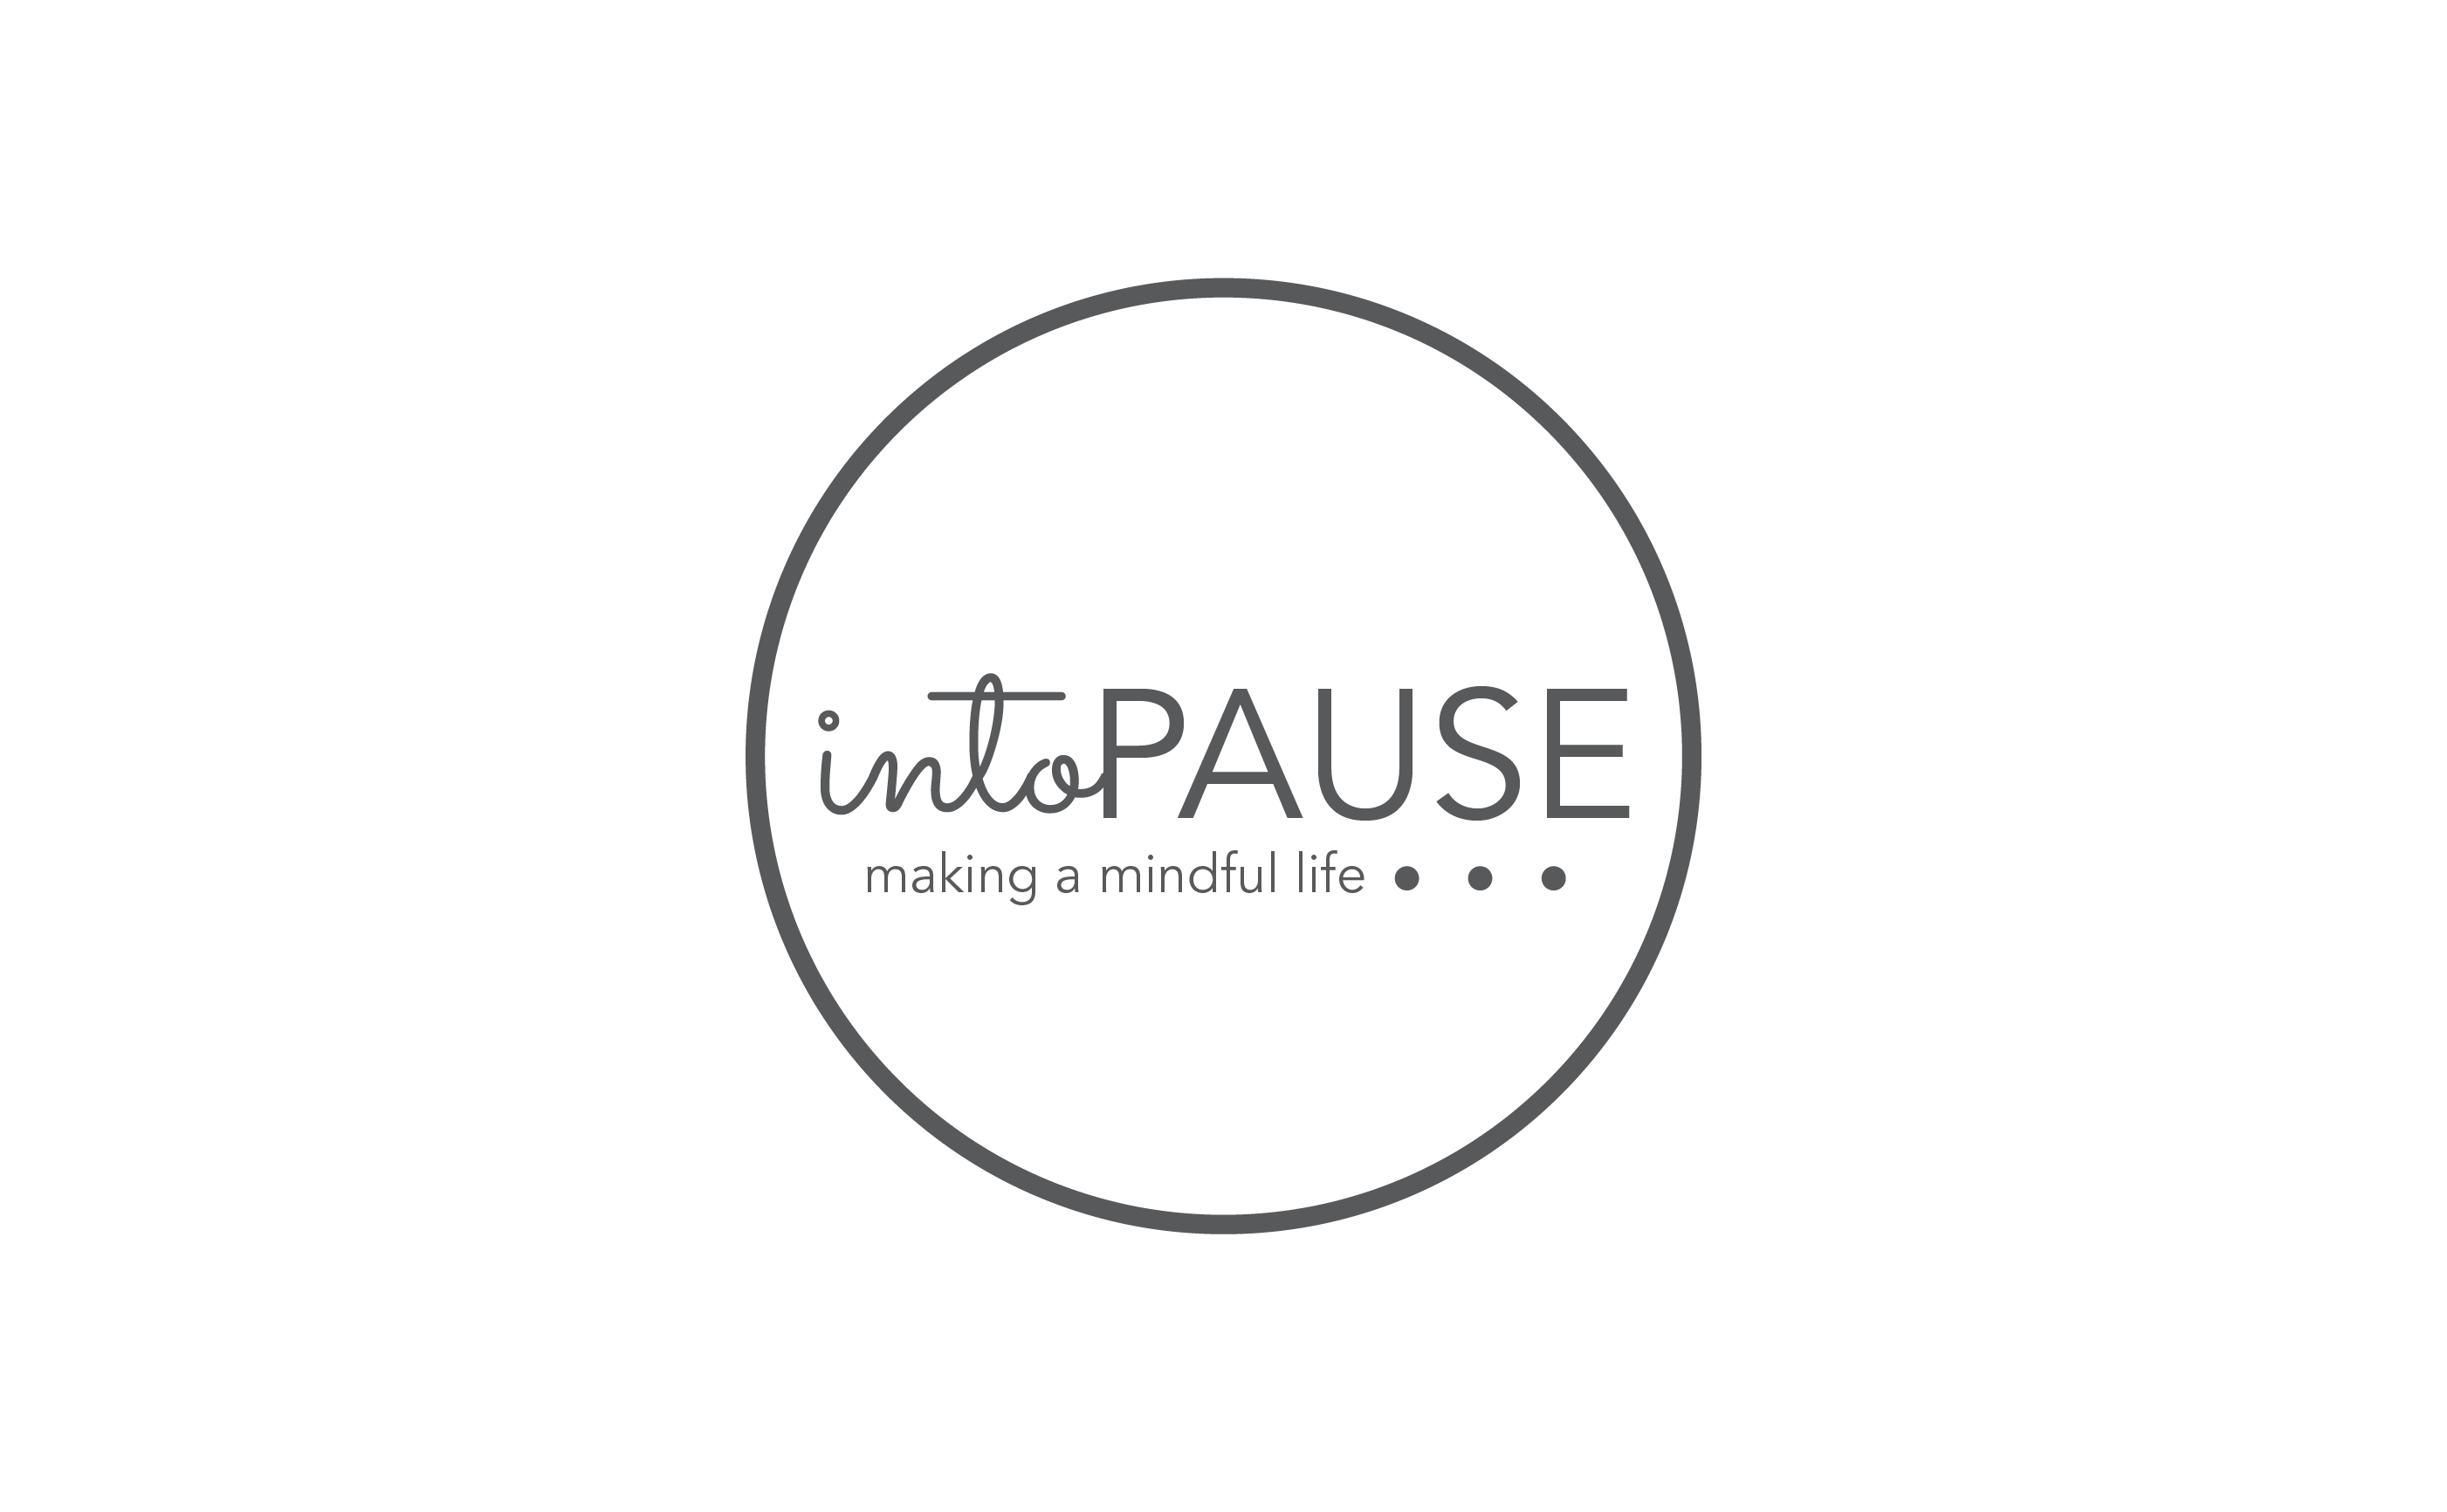 Kooperation mit The Pause Project - Making Kindful Classrooms | lehrerschueler.de